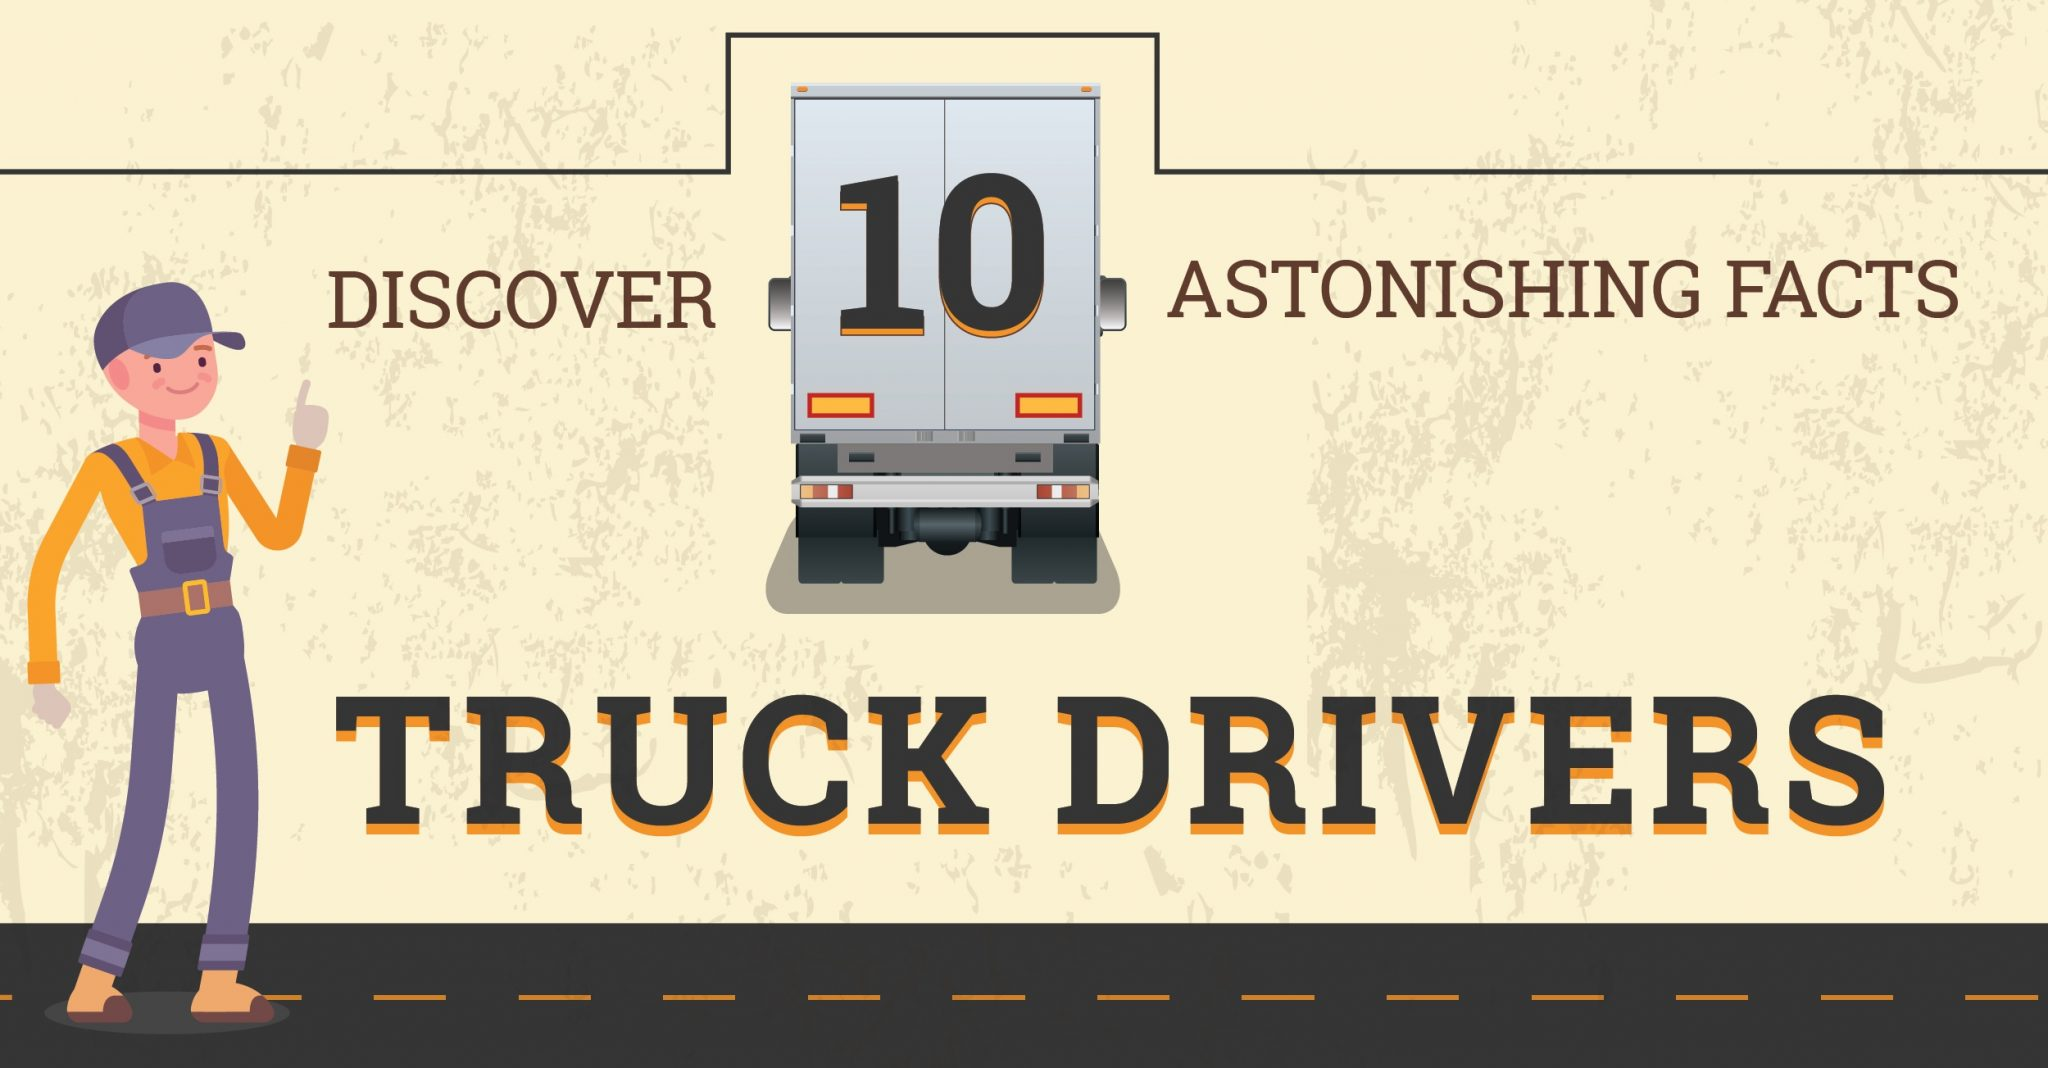 INFOGRAPHIC: Discover 10 Astonishing Facts About Truck Drivers